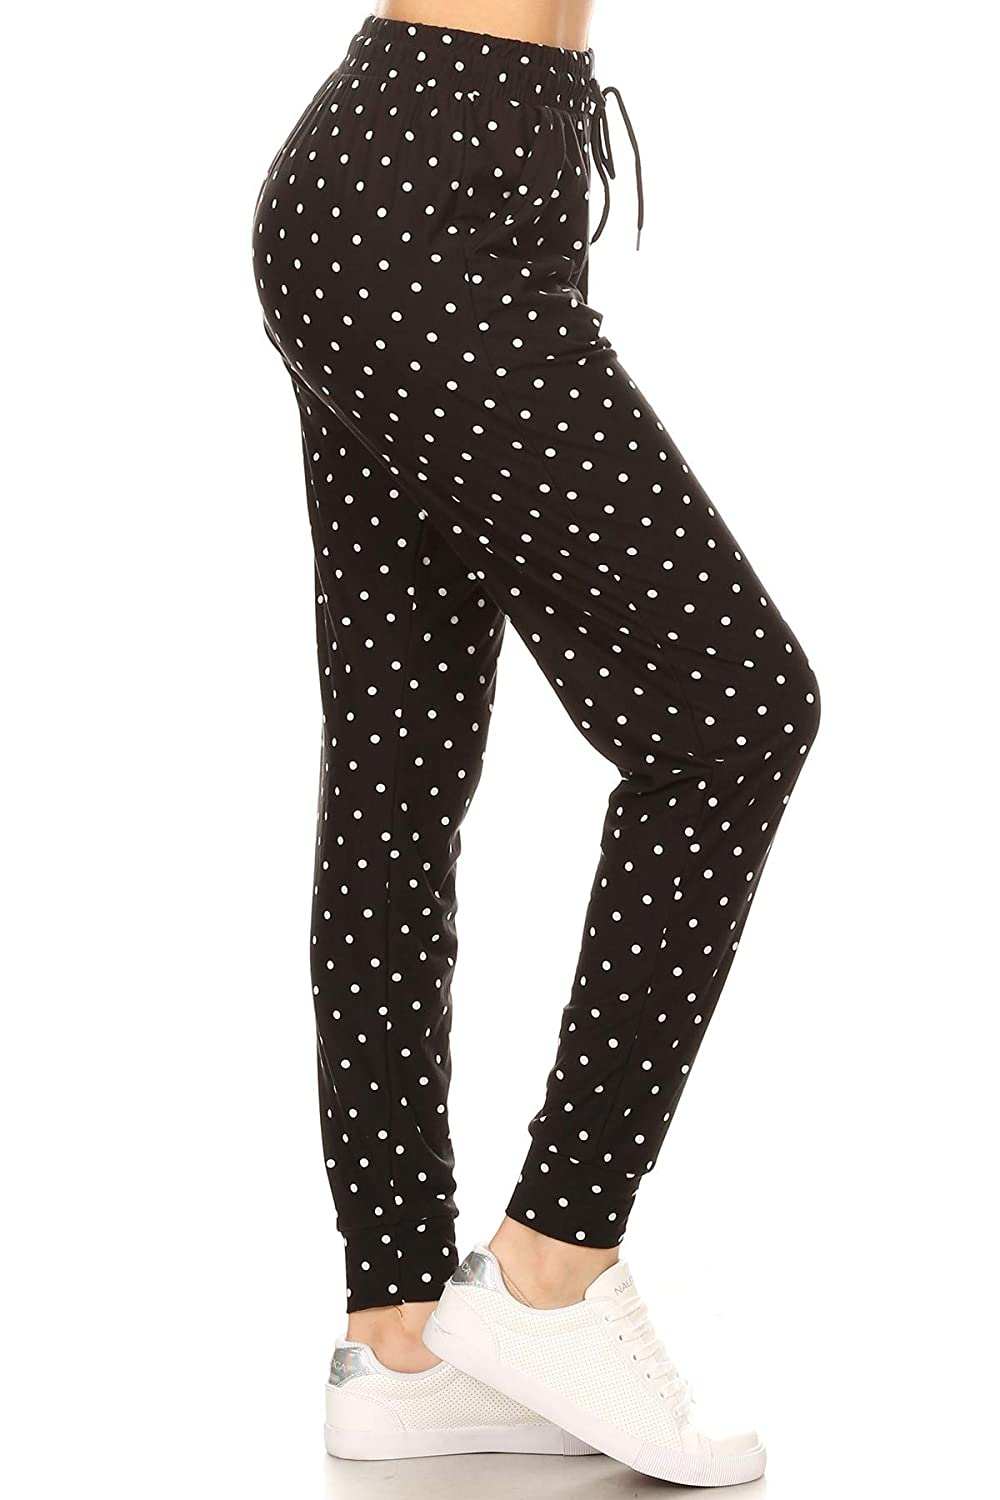 1bf7aaa8c705 Amazon.com: Leggings Depot Premium Jogger Women's Popular Print and Solid  High Waist Track Yoga Full Length Pants(S-XL): Clothing